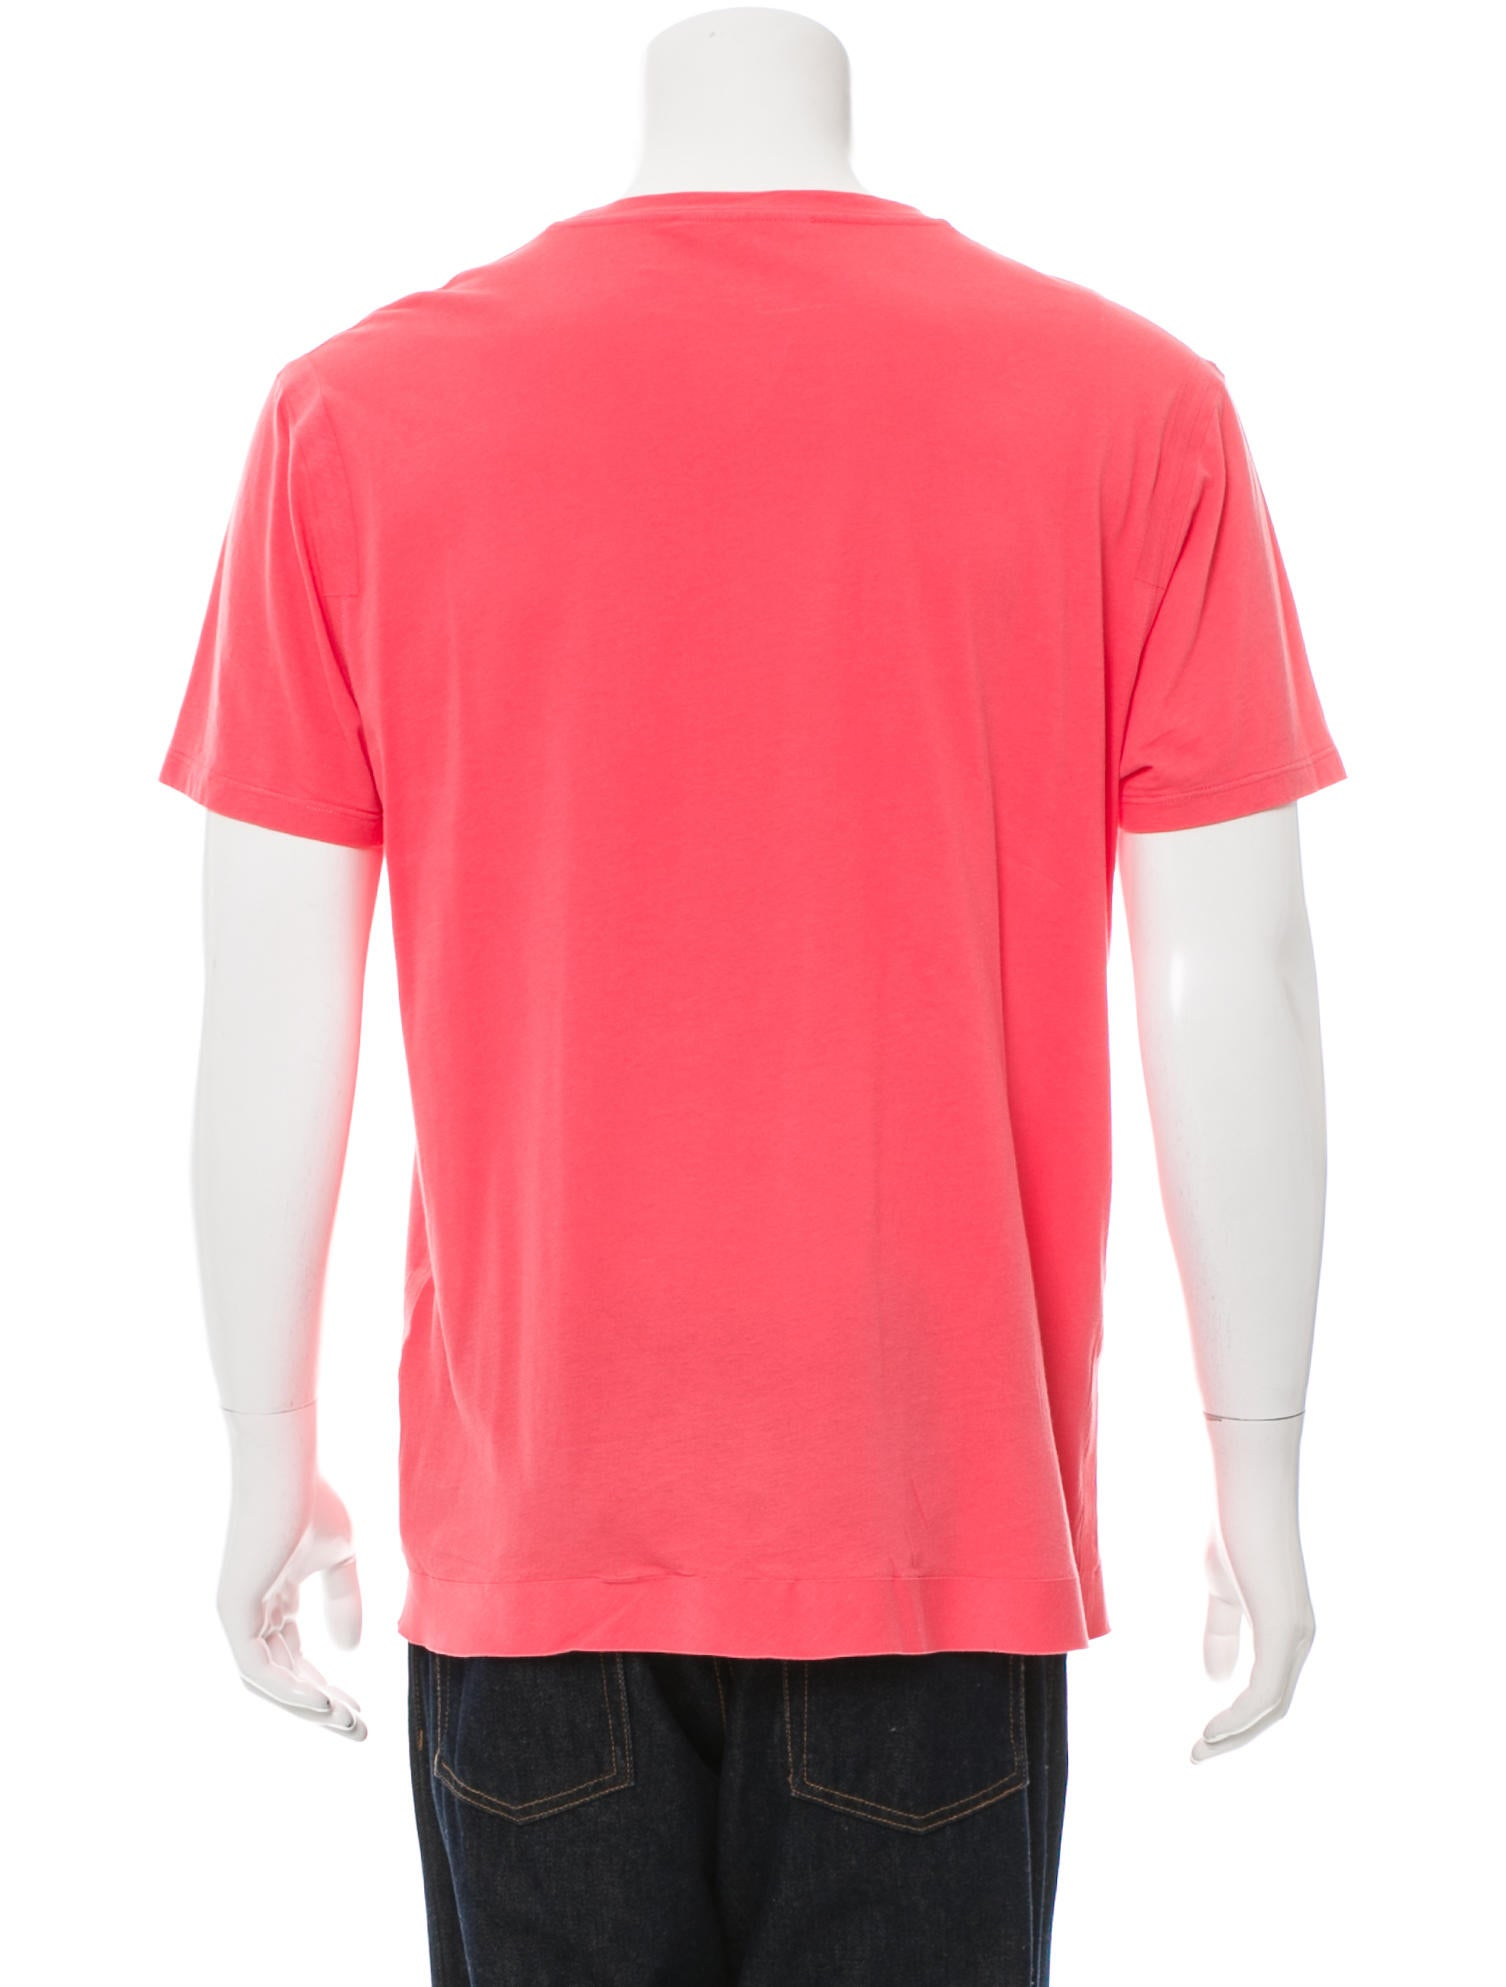 Marc jacobs scoop neck short sleeve t shirt clothing for Scoop neck t shirt